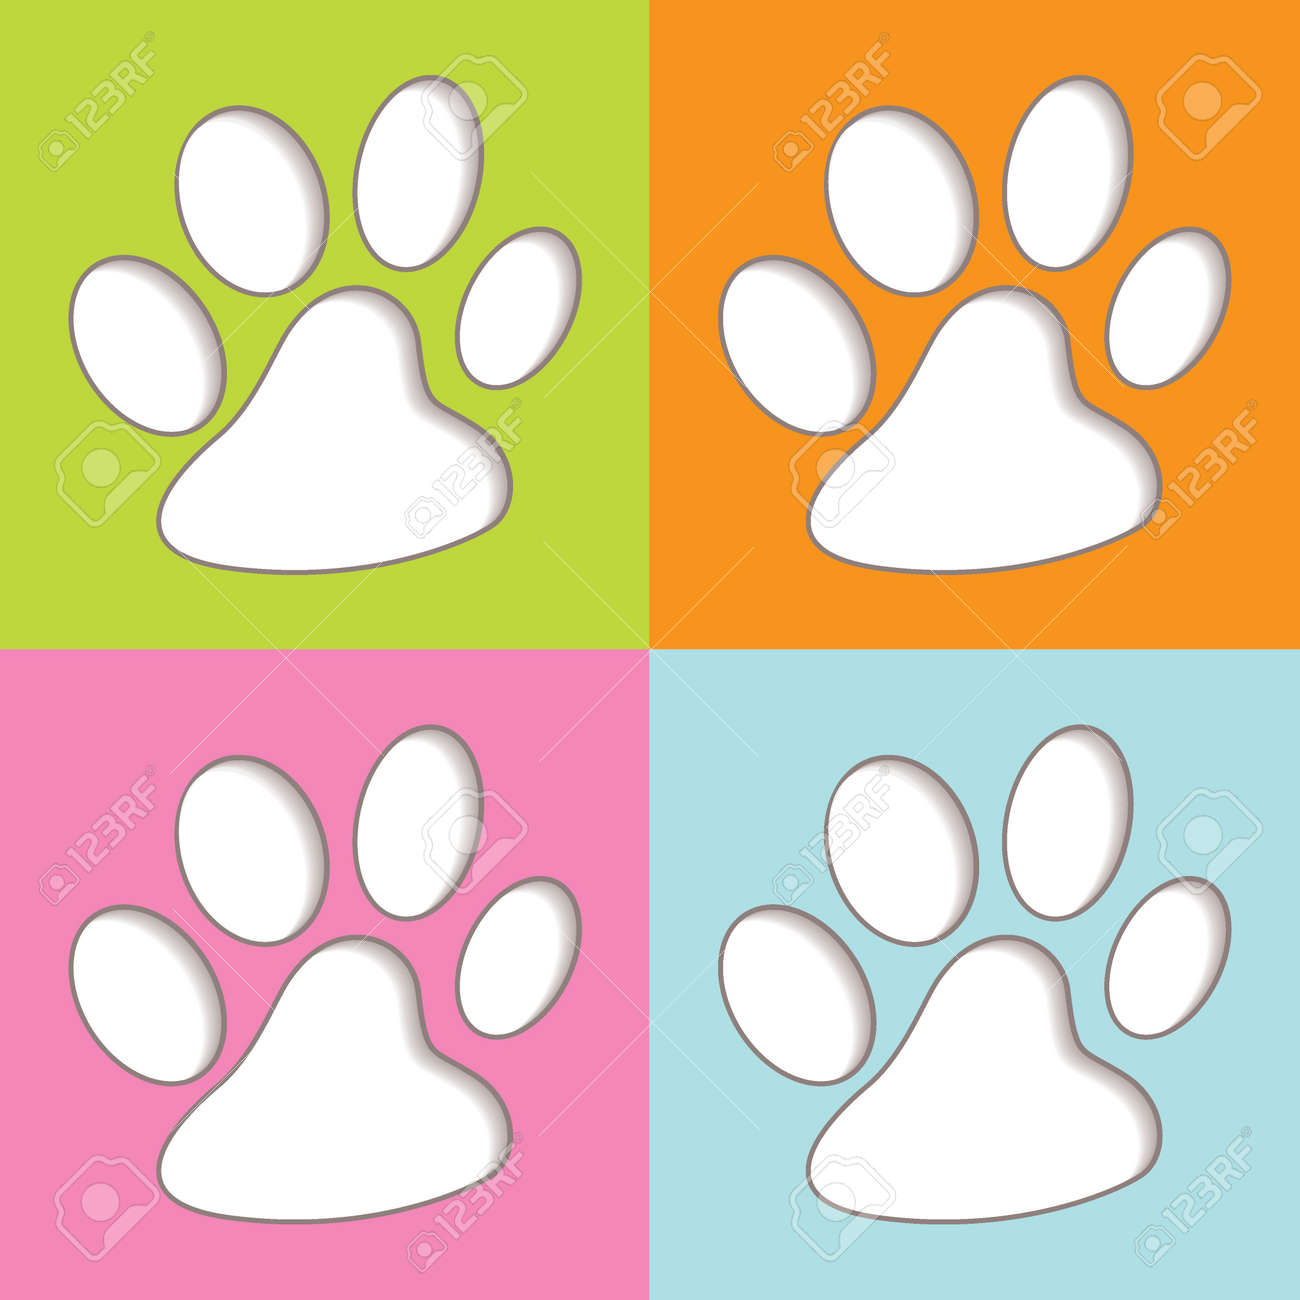 Bright fun colourful animal print icons with shadow - 13348061